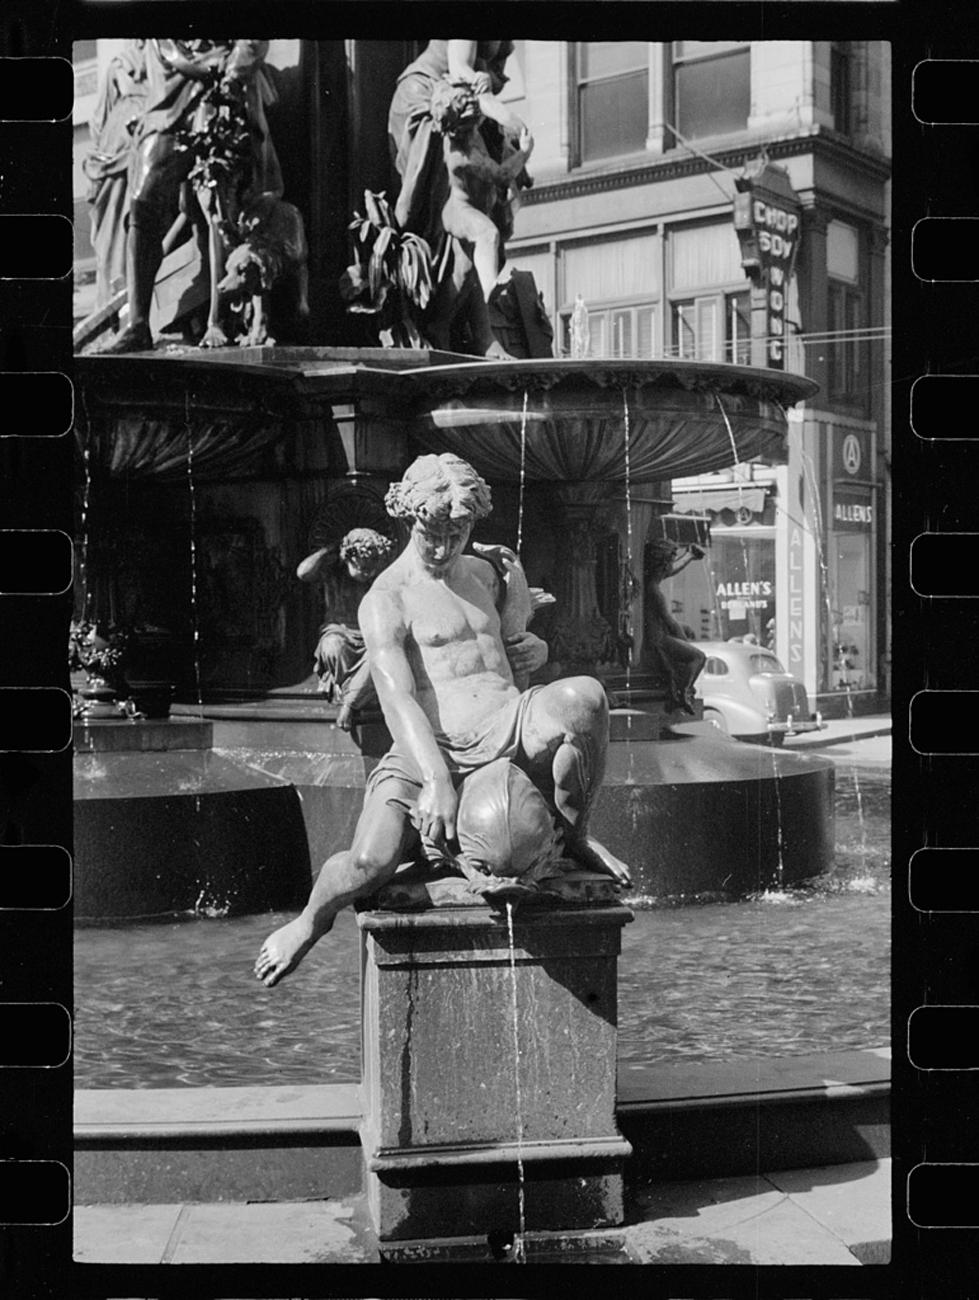 """Tyler-Davidson Fountain, Cincinnati, Ohio"" some time between 1900 and 1906{ }/ Image: Detroit Publishing Co. accessed via the Library of Congress // Published: 3.4.19"